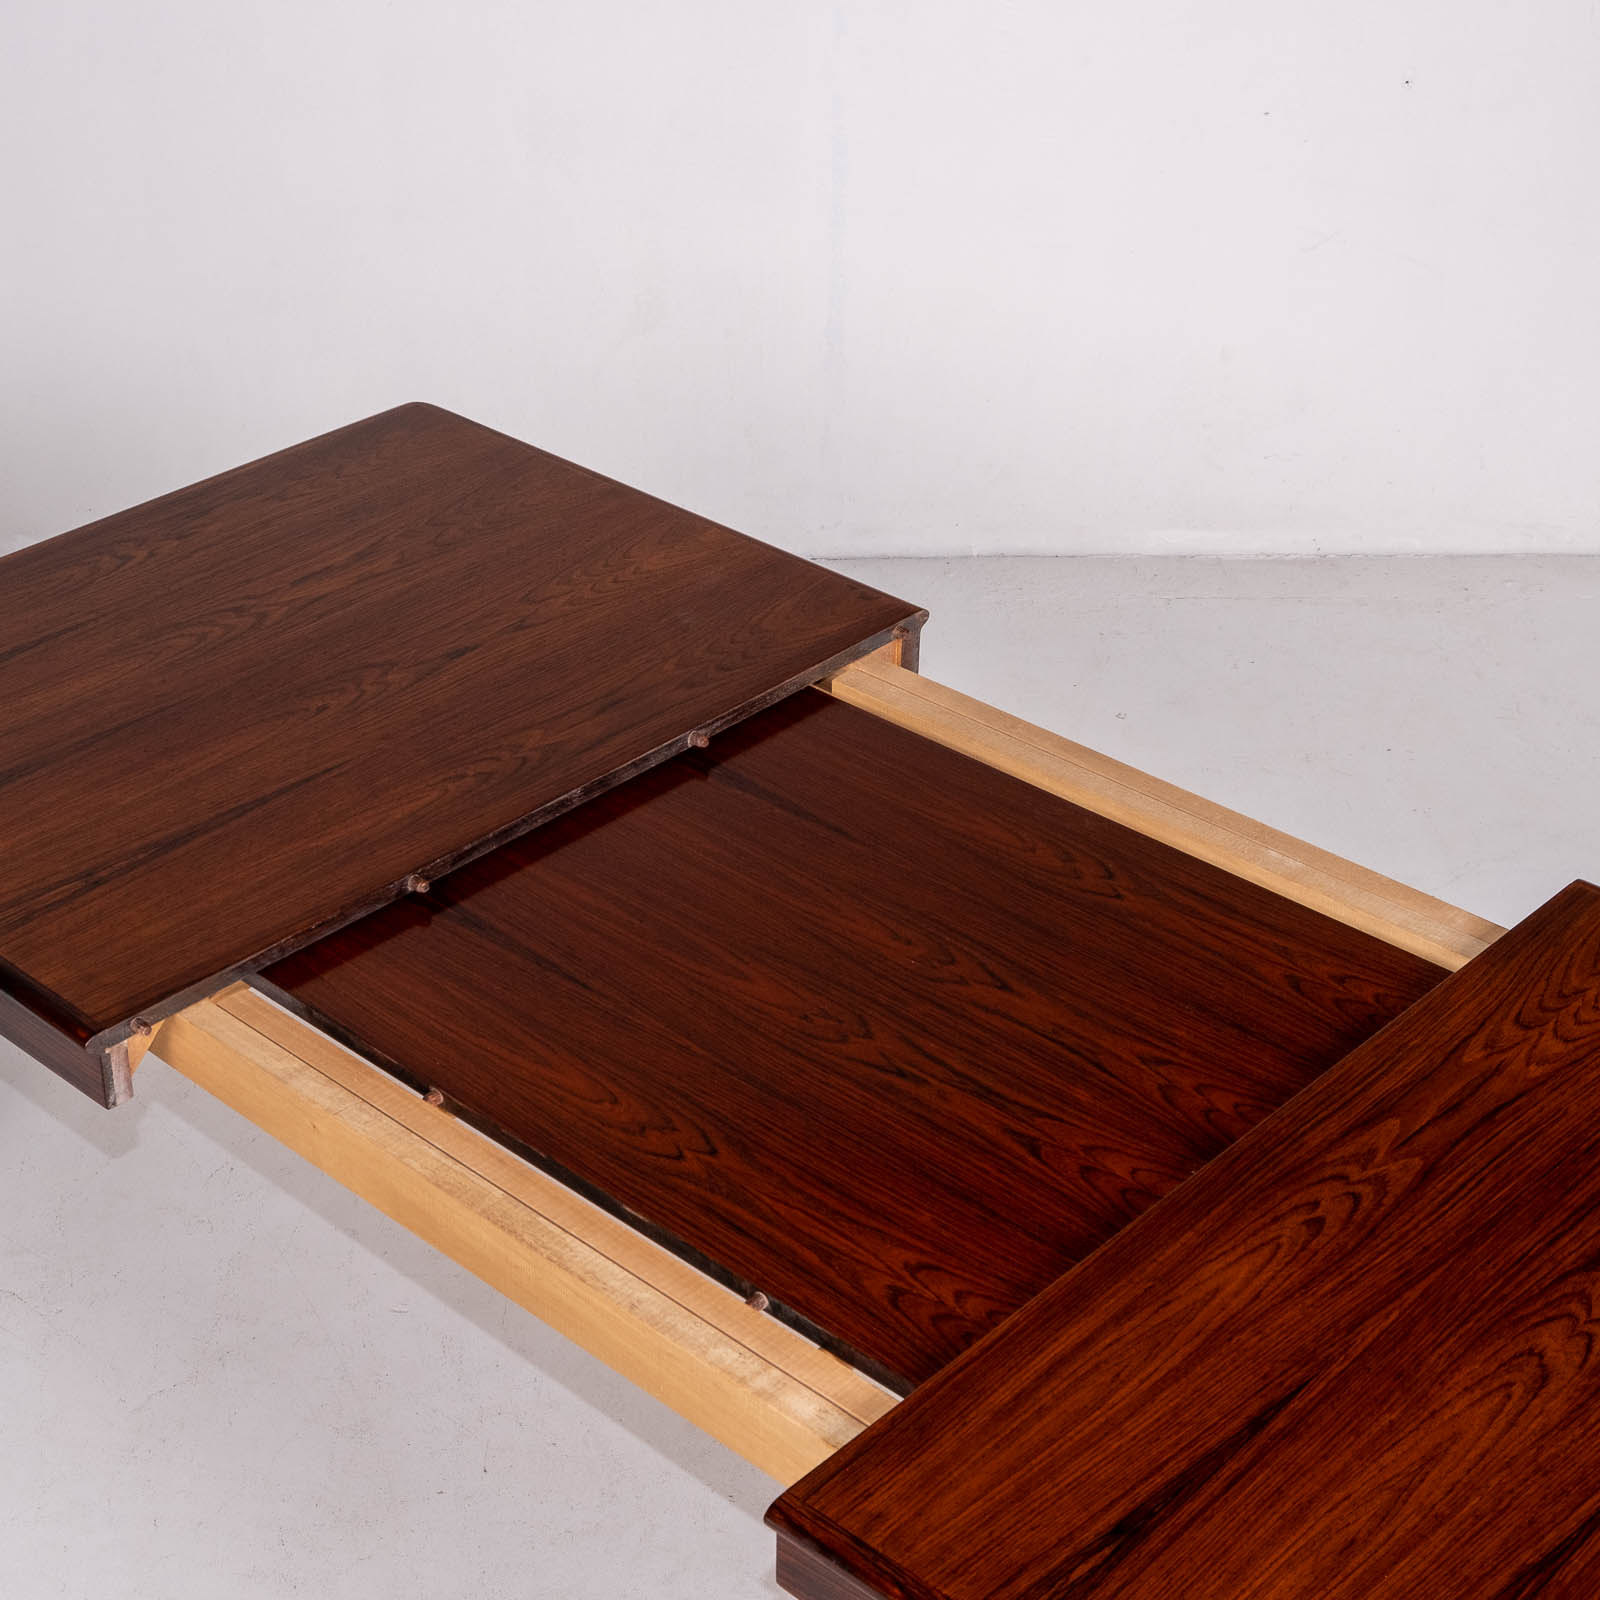 Extendable Dining Table By Hw Klein For Bramin In Rosewood, 1960s, Denmark6